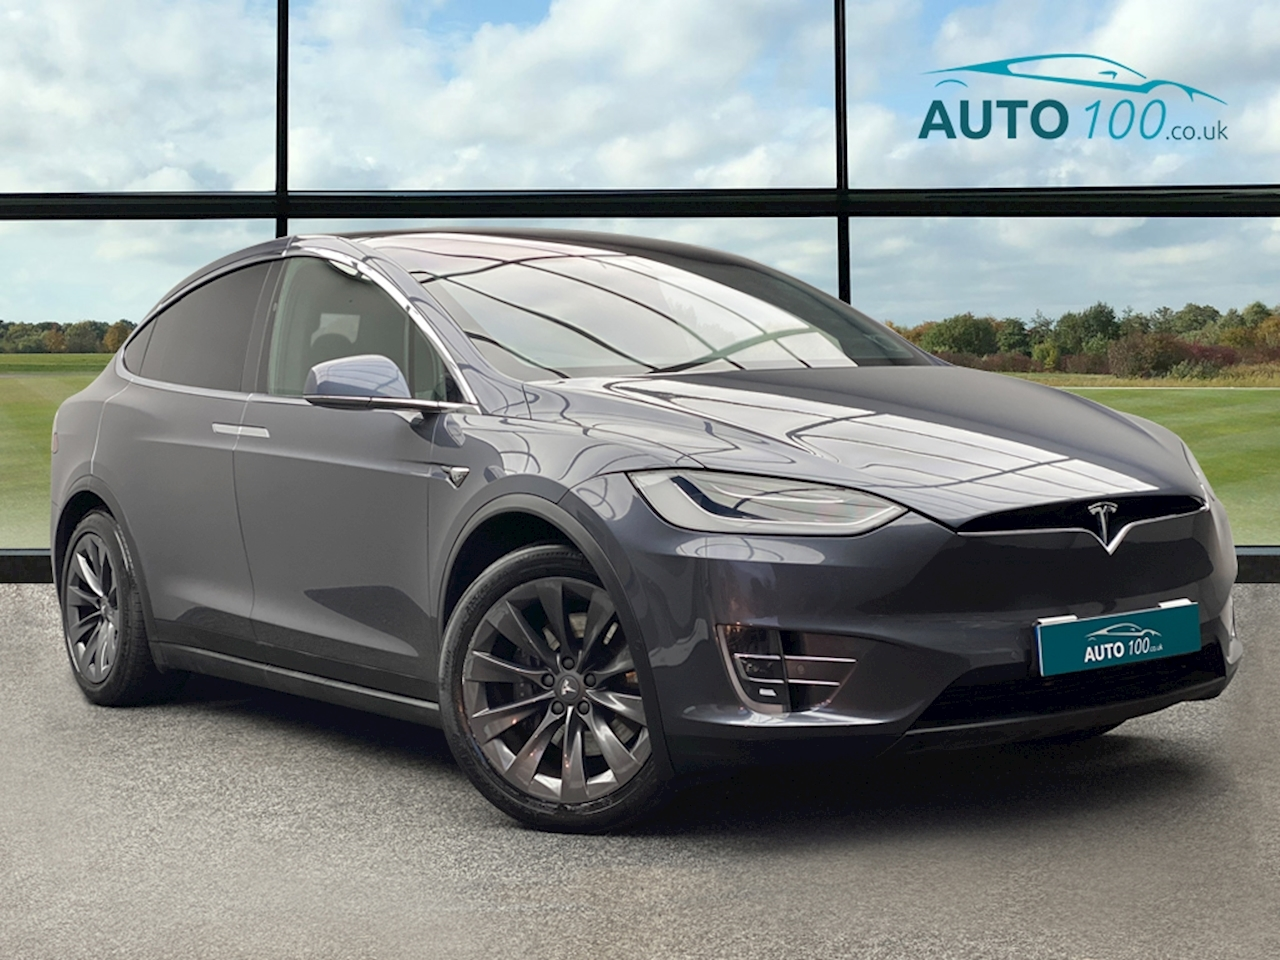 Tesla 100D Dual Motor SUV 5dr Electric Auto 4WDE (417 bhp)